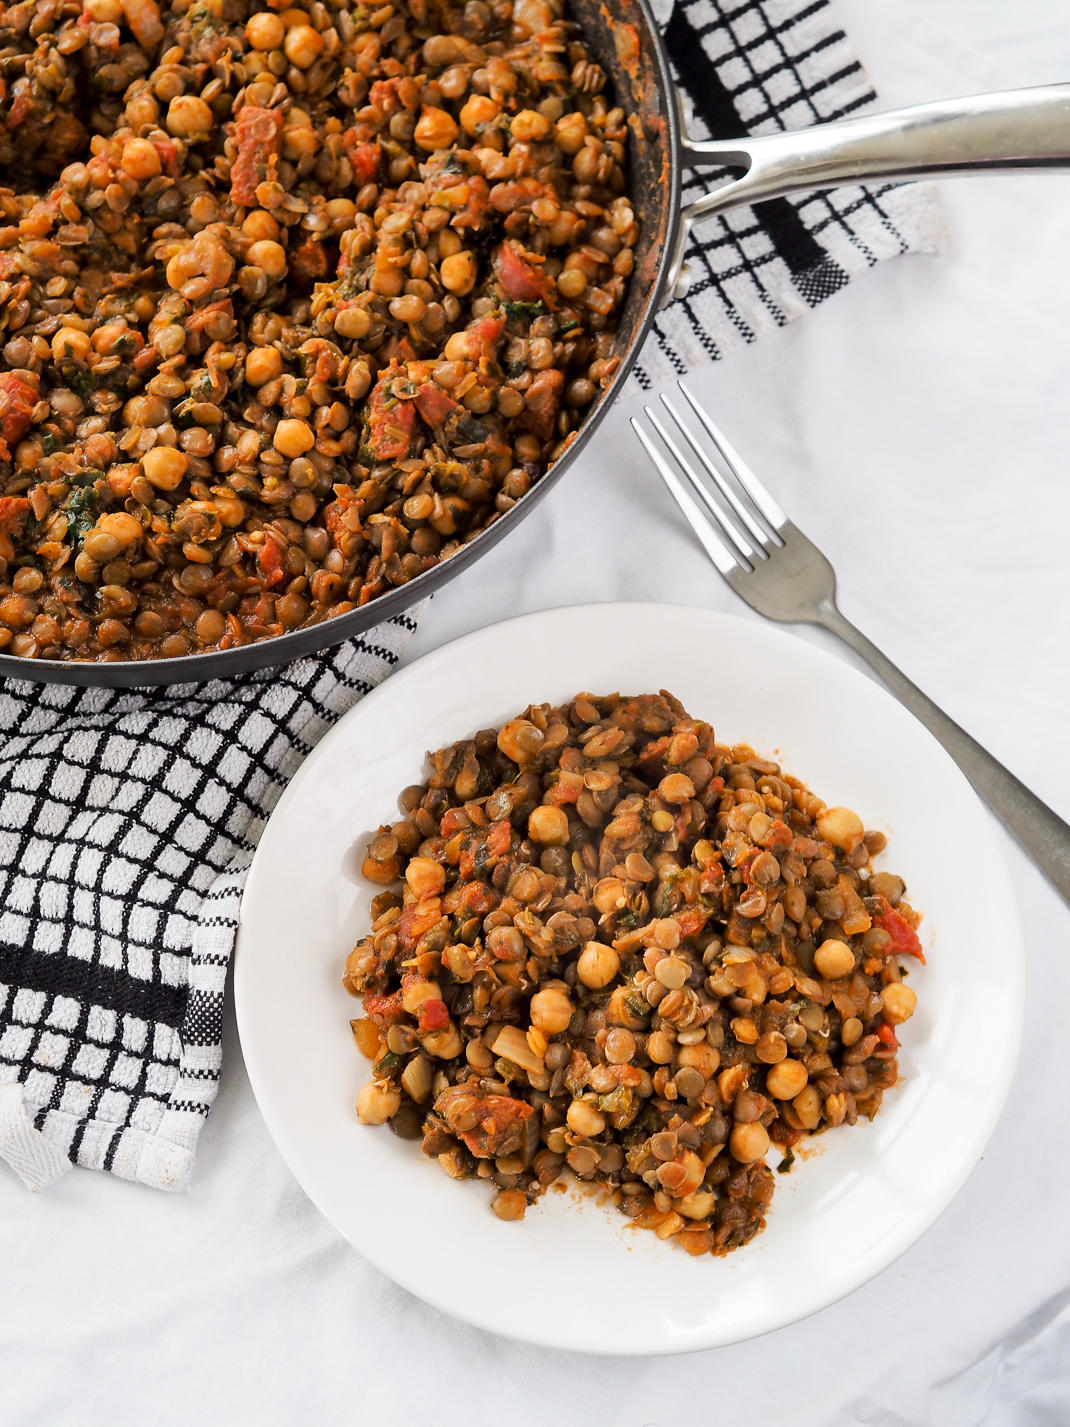 tomato, lentil and chickpea stew